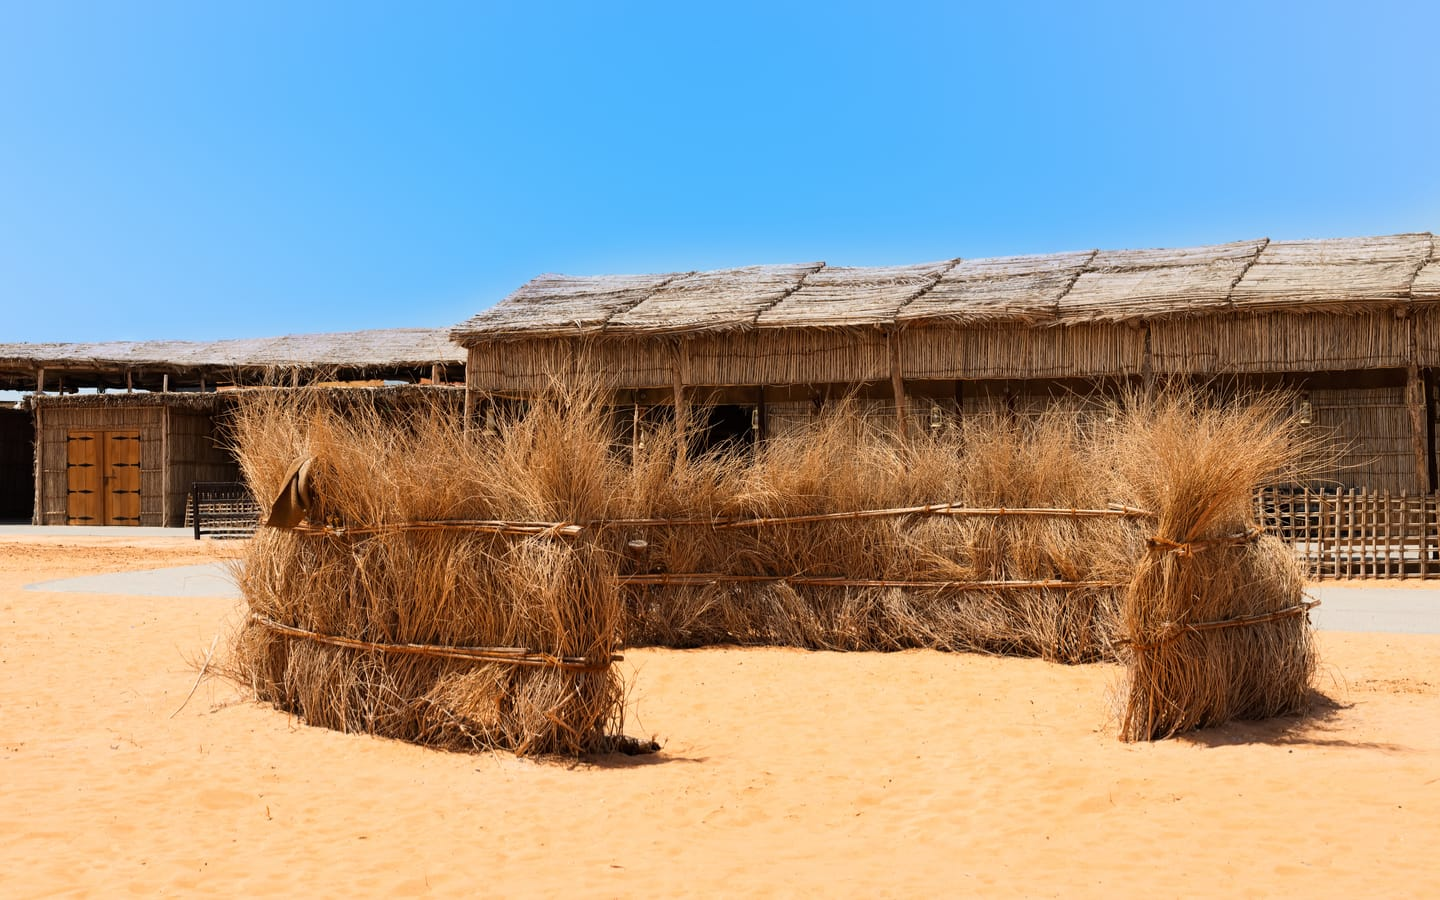 Areesh homes made of palm trees